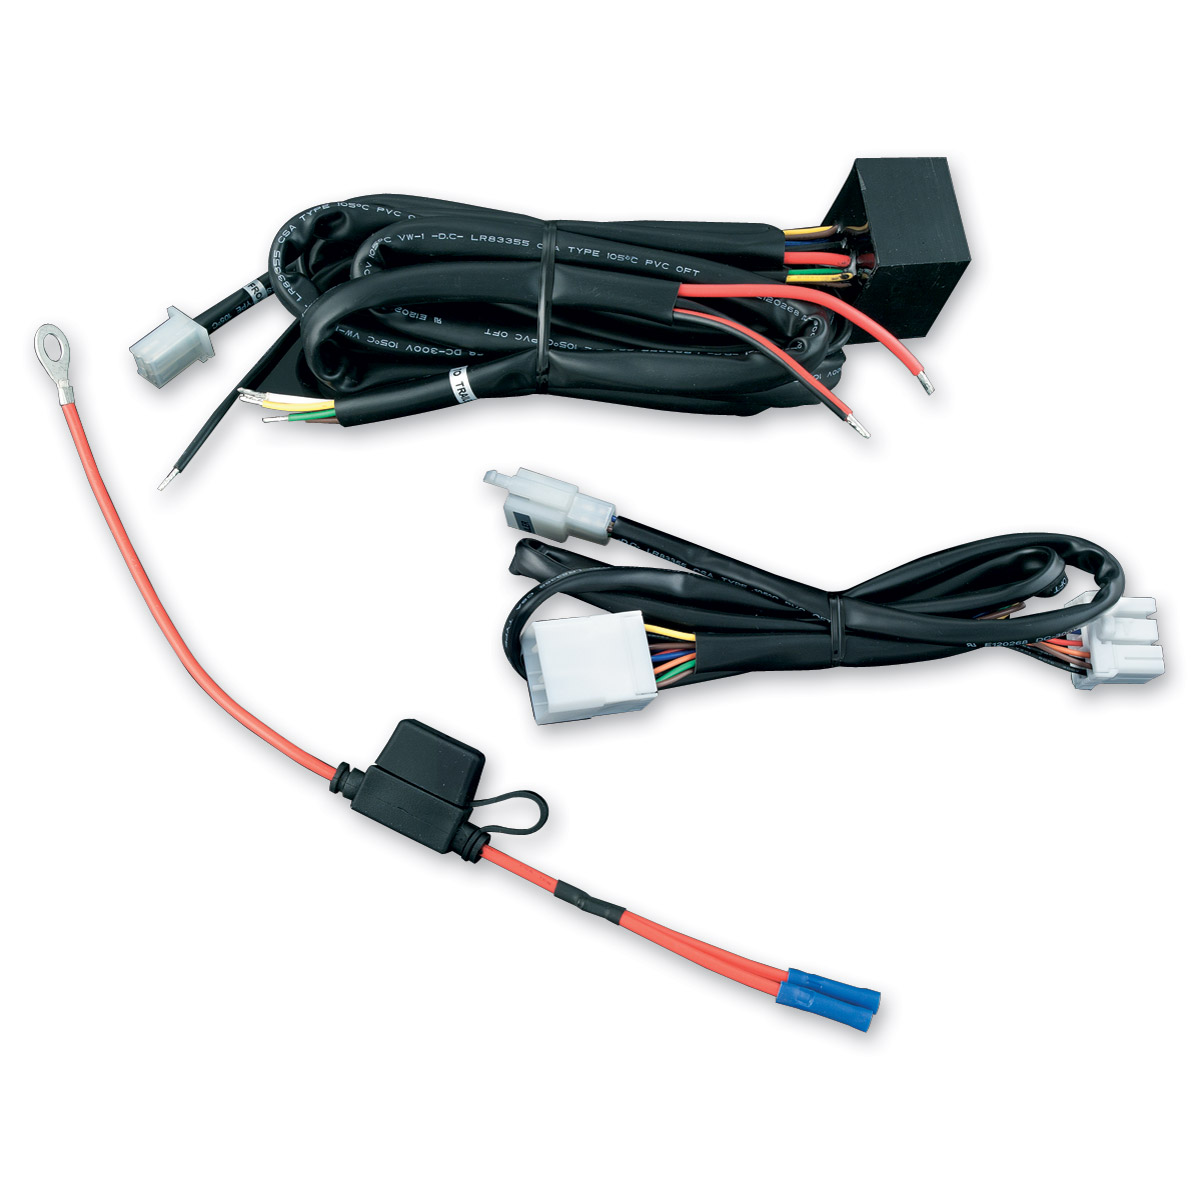 wiring harness connector ends auto electrical wiring diagram \u2022 automotive wire connector kit kuryakyn plug and play trailer wiring and relay harness 246 609 rh jpcycles com polaris wiring harness connectors ford wiring harness connectors